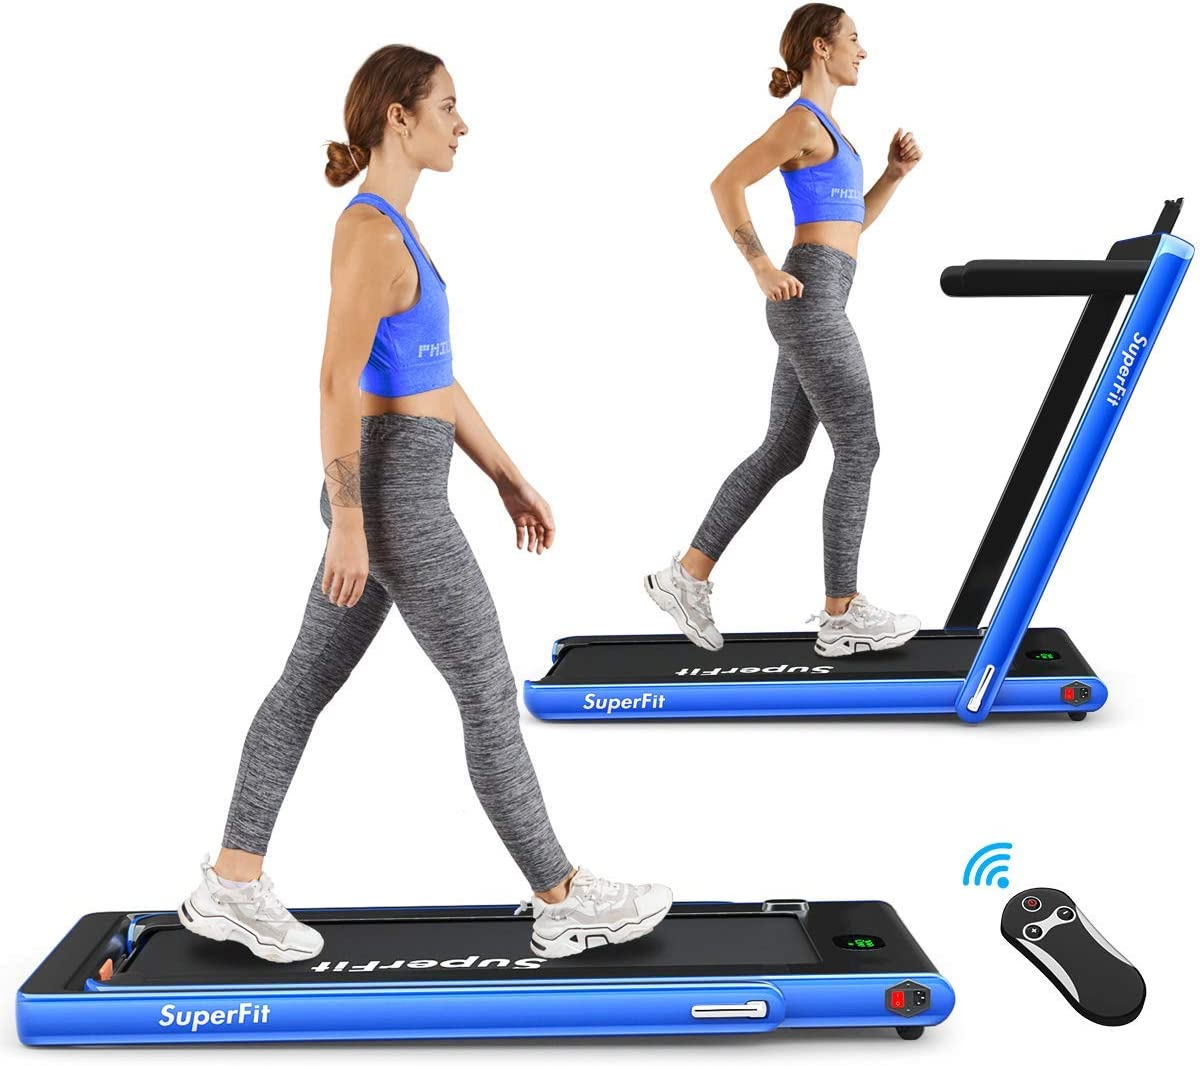 Goplus 2 in 1 Folding Treadmill, 2.25HP Under Desk Electric Treadmill, Installation-Free, with Bluetooth Speaker, Remote Control and LED Display, Walking Jogging Machine for Home Office Use